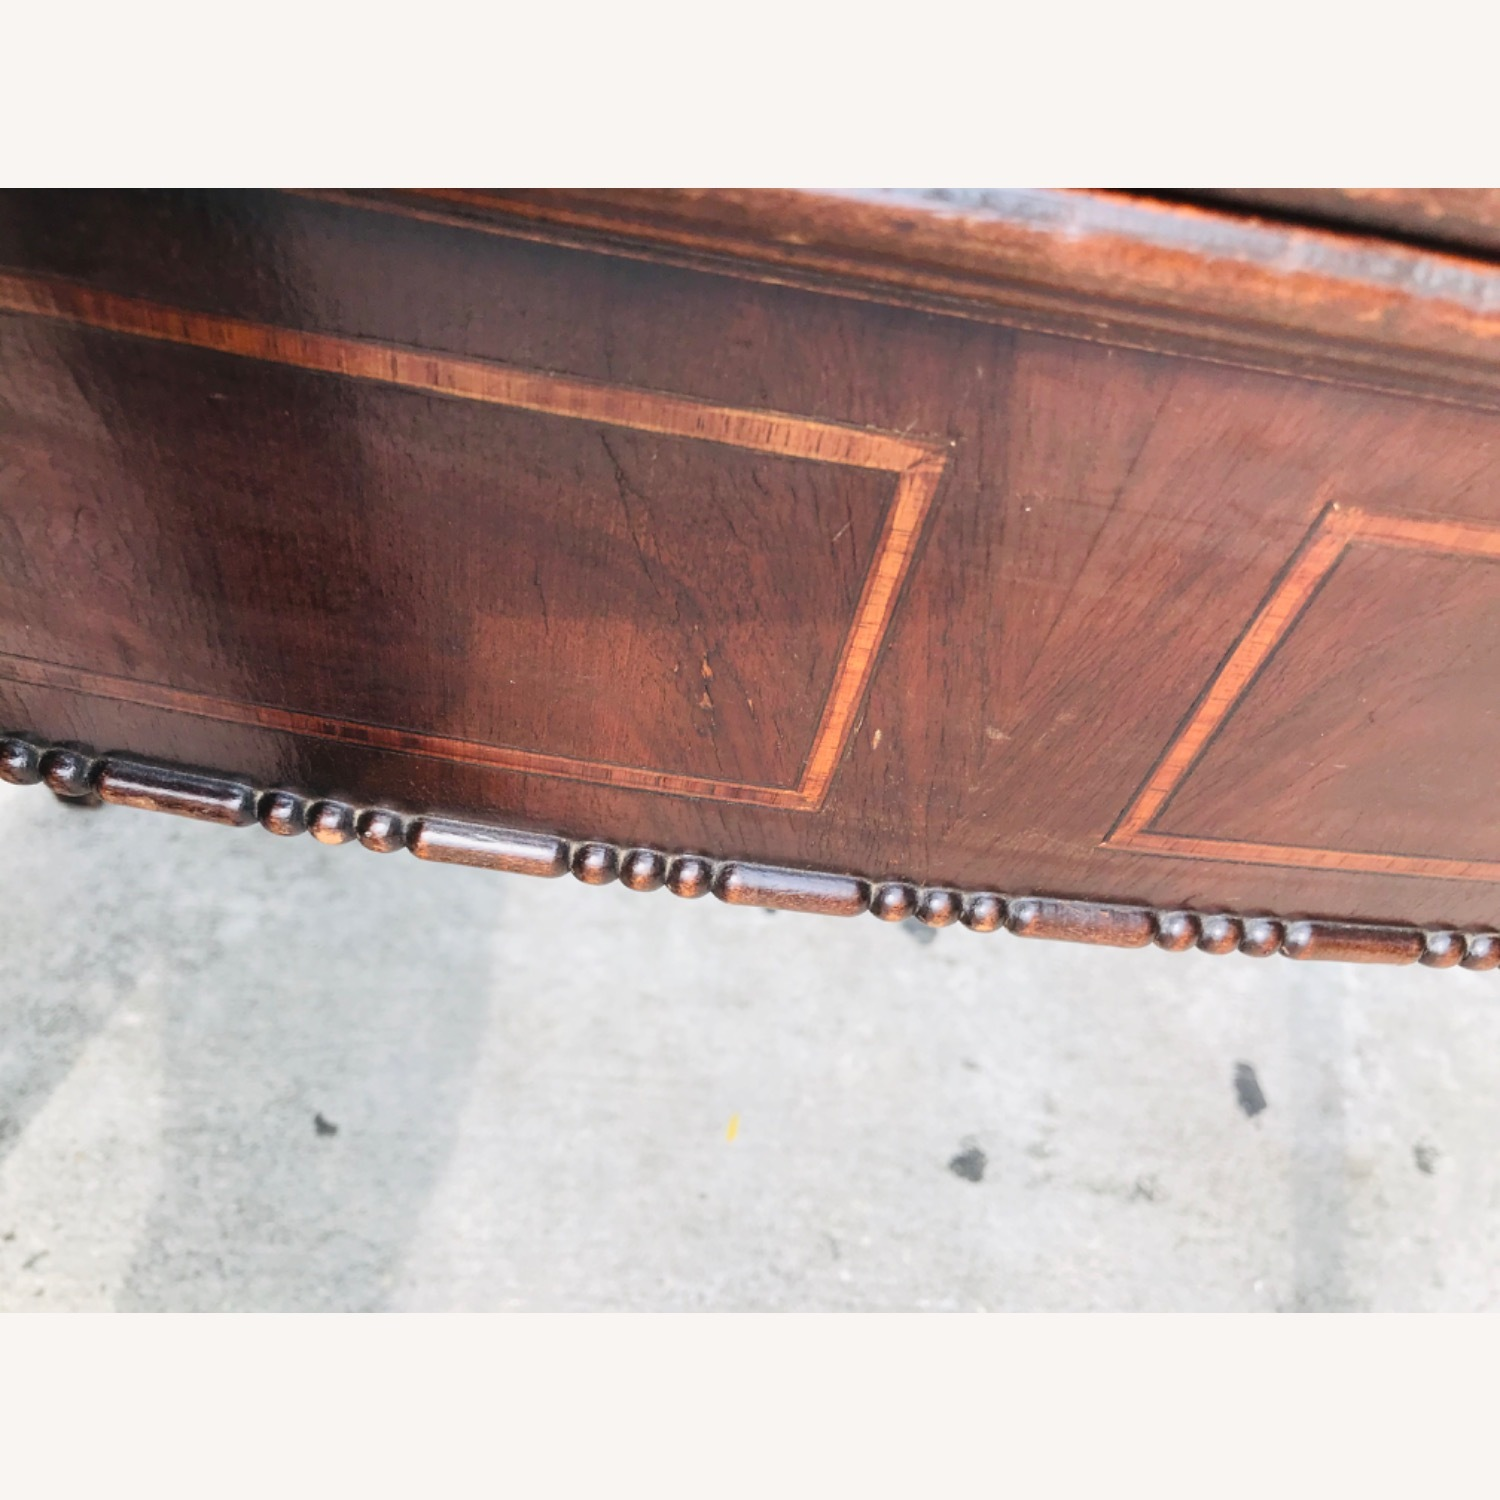 Antique 1920s Mahogany Table w/3 Leaves  - image-17